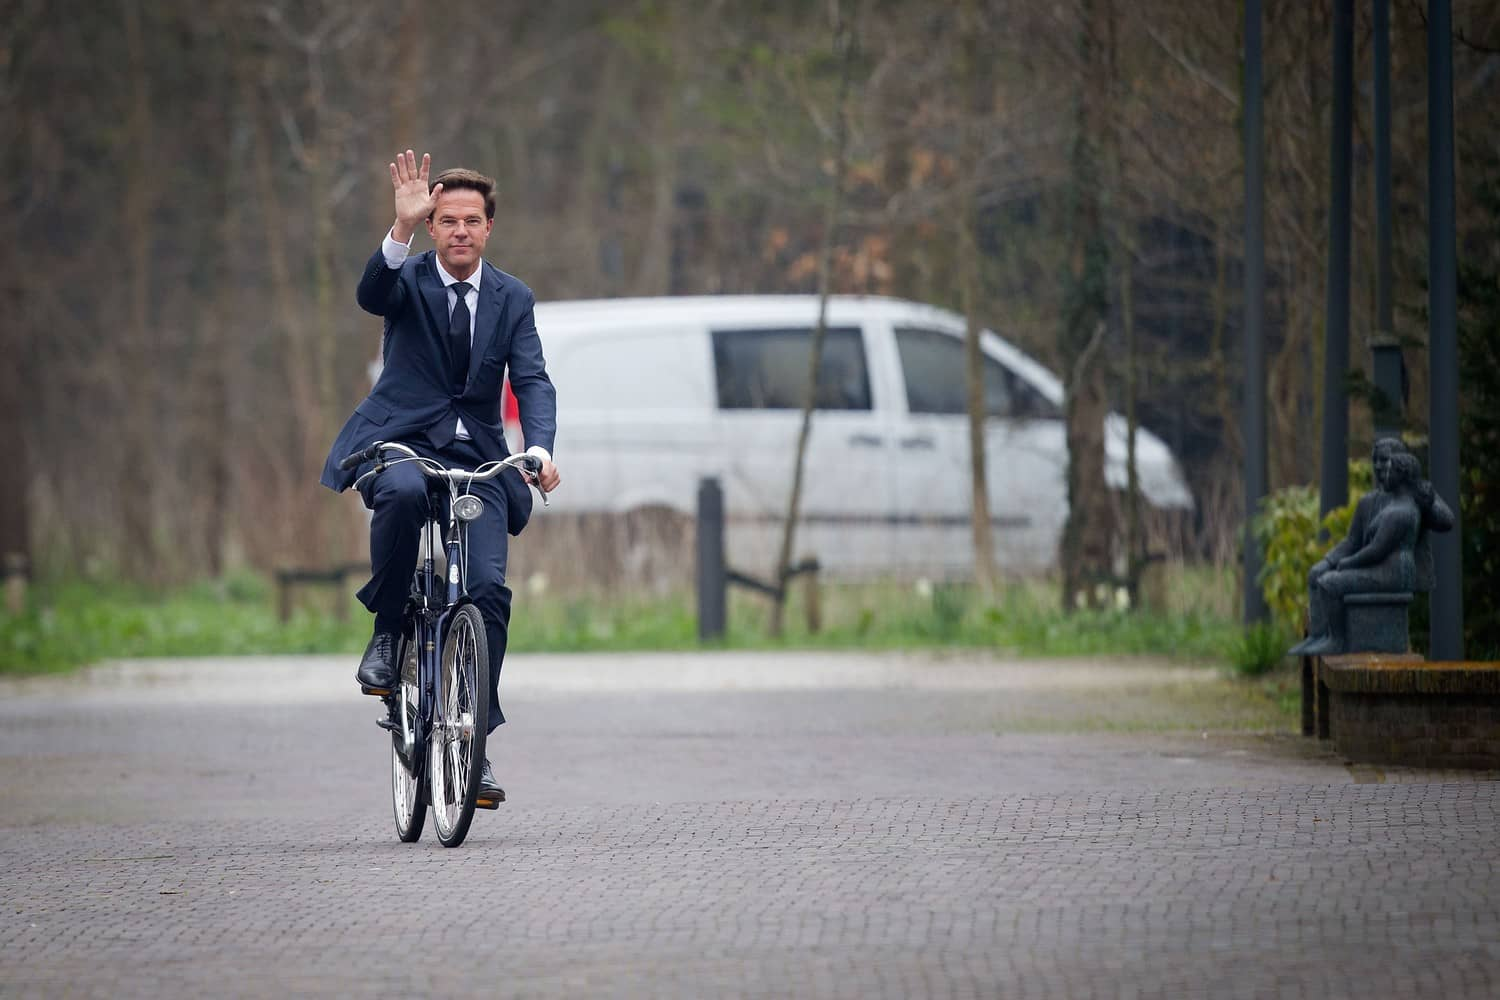 Cycling Nation: Why the Netherlands is such a successful biking country